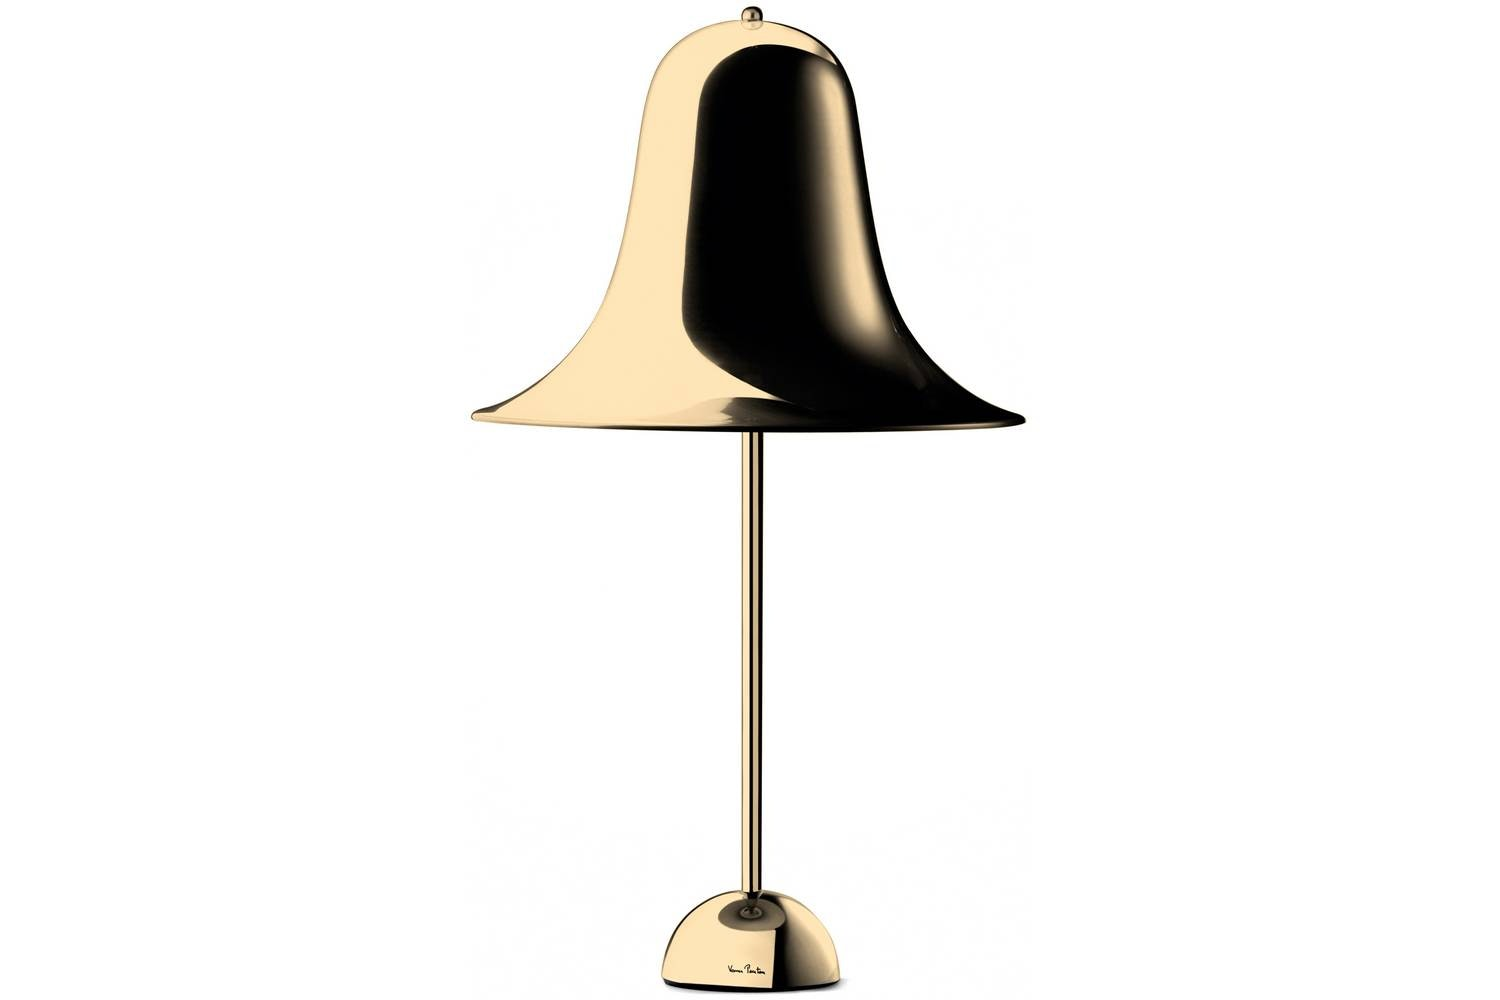 Pantop Table Lamp in Brass by Verner Panton for Verpan